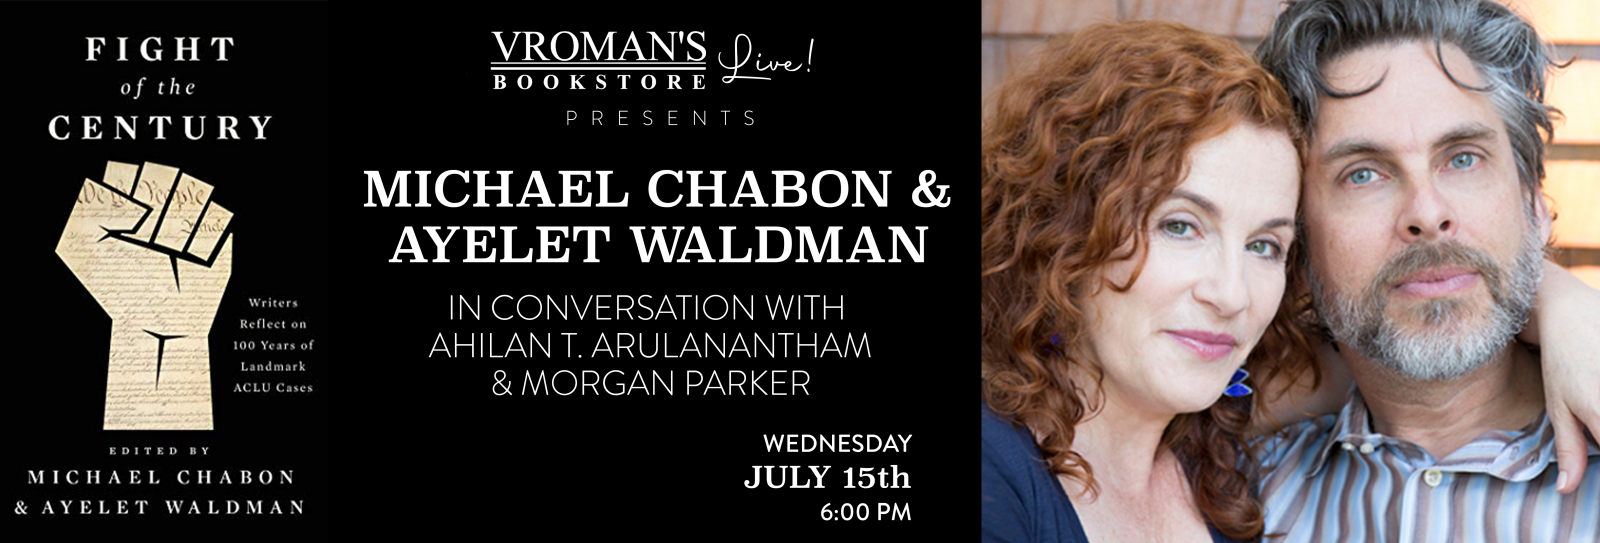 Vroman's Live presents Michael Chabon and Ayelet Waldman, in conversation with Ahilan T. Arulanantham and Morgan Parker on Wednesday July 15th at 6pm